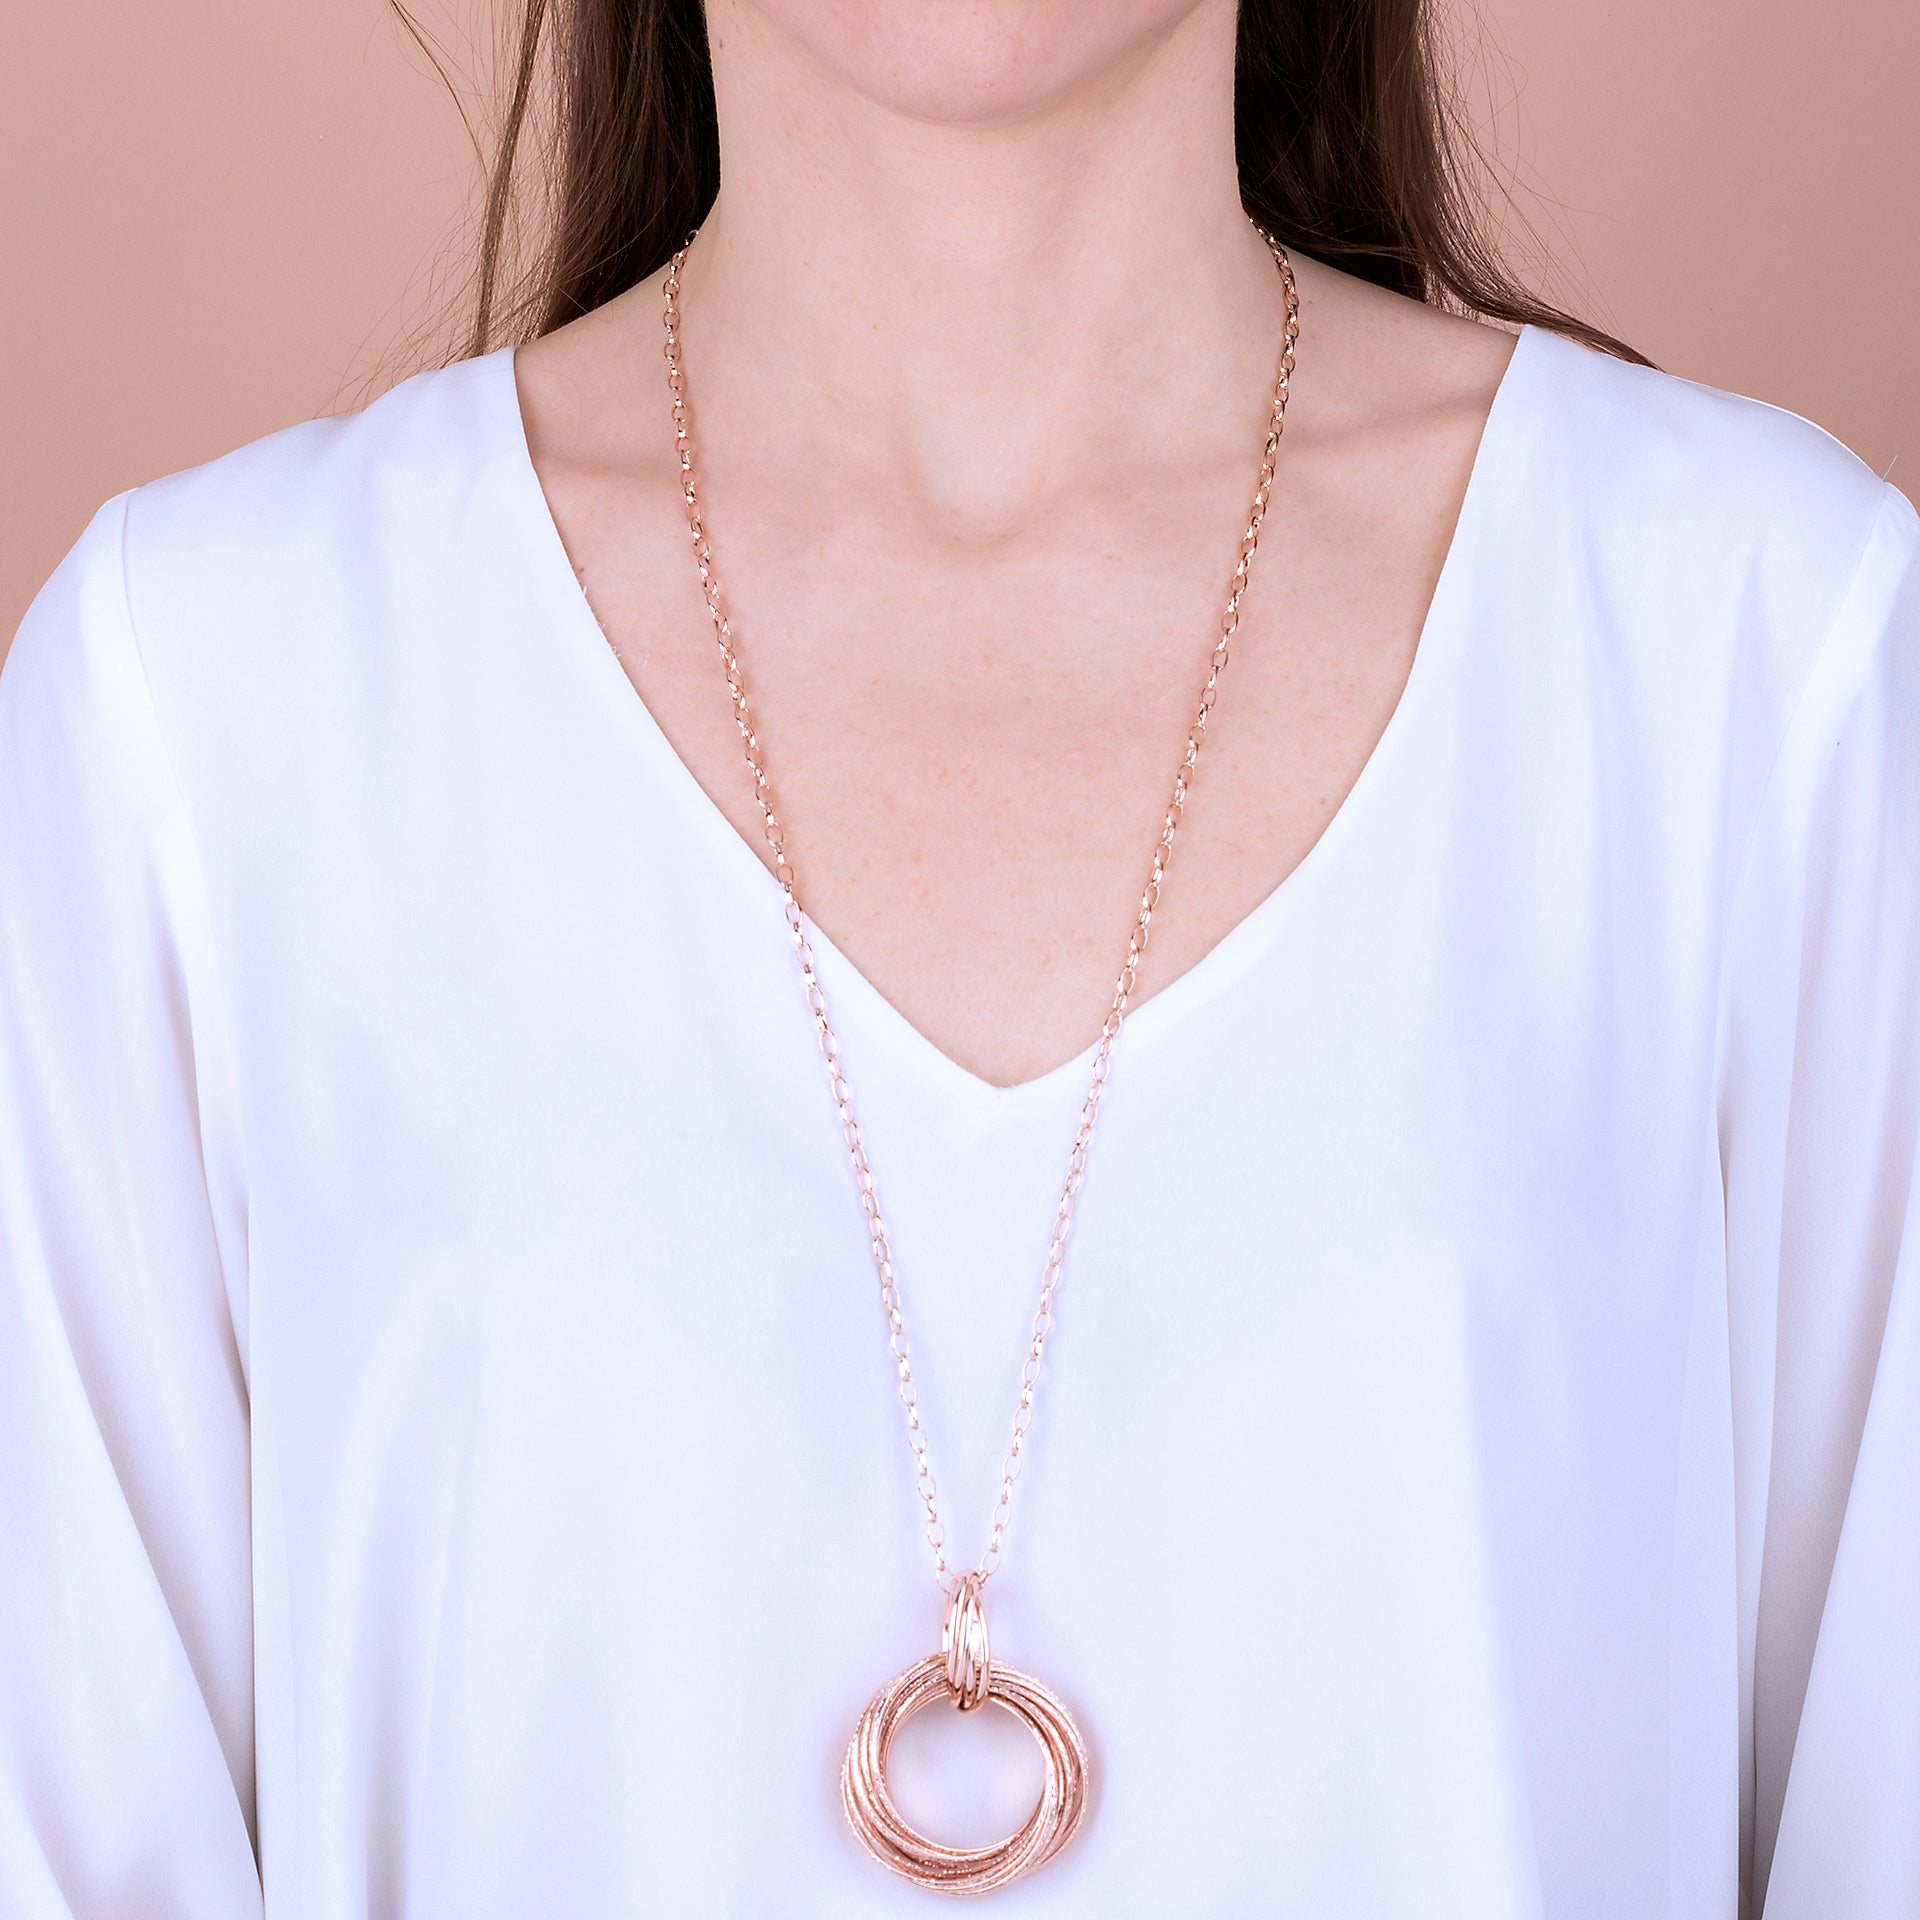 Necklace with Circles